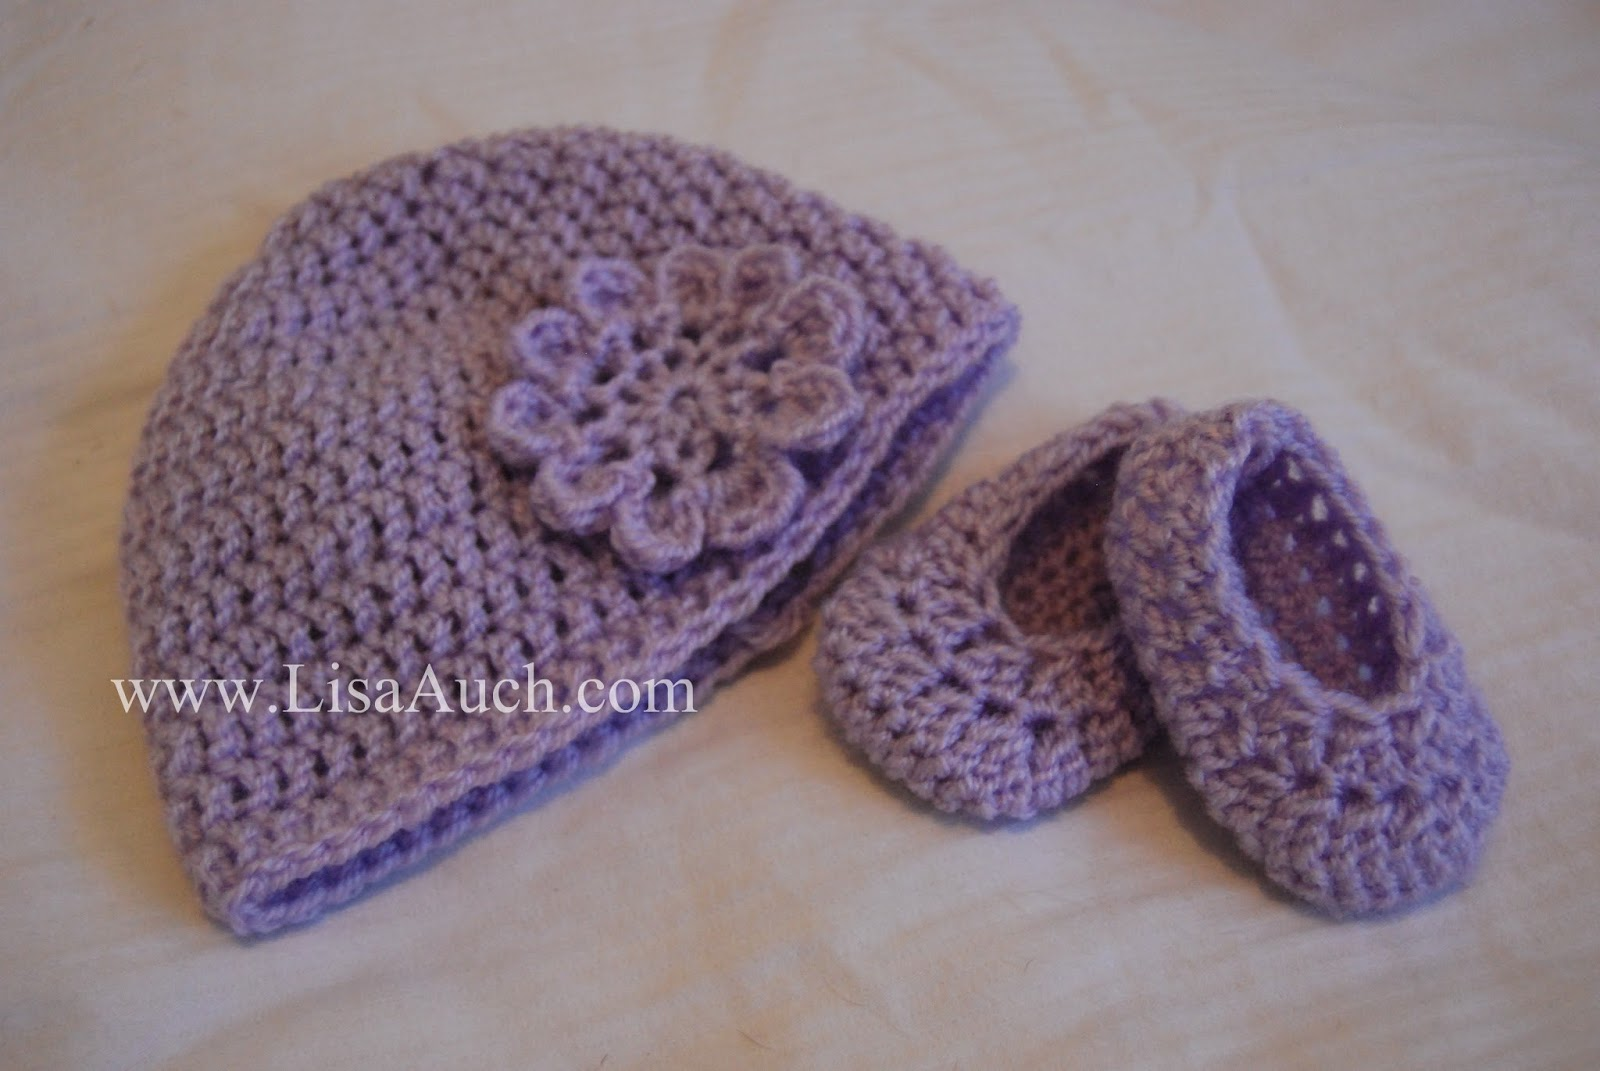 Crochet Baby Booties Pattern Pinterest Free Crochet Pattern For Baby ...